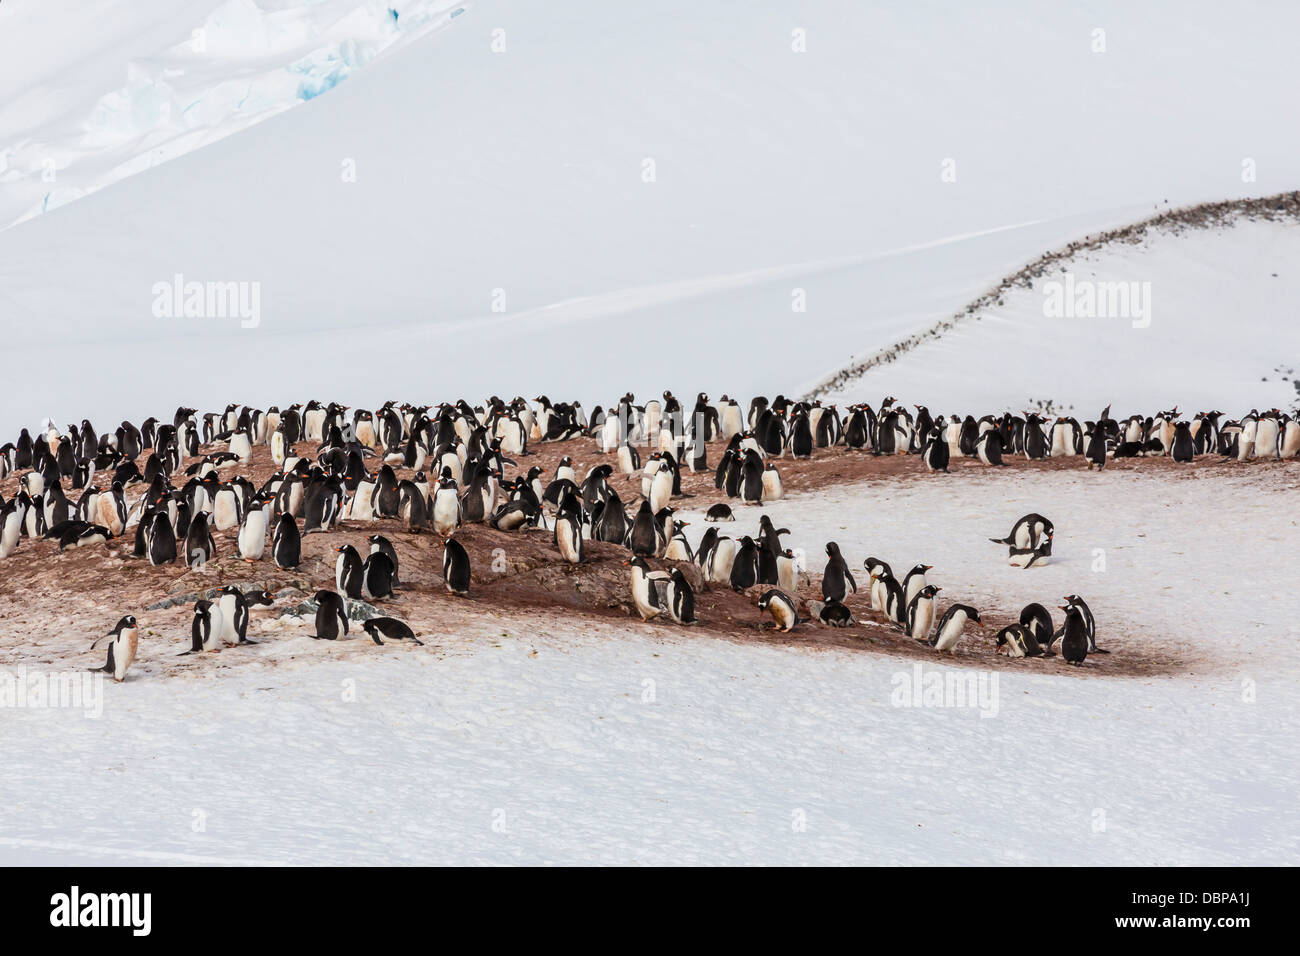 Manchots adultes (Pygoscelis papua) colonie d'accouplement sur l'Île Cuverville, l'Antarctique, Photo Stock